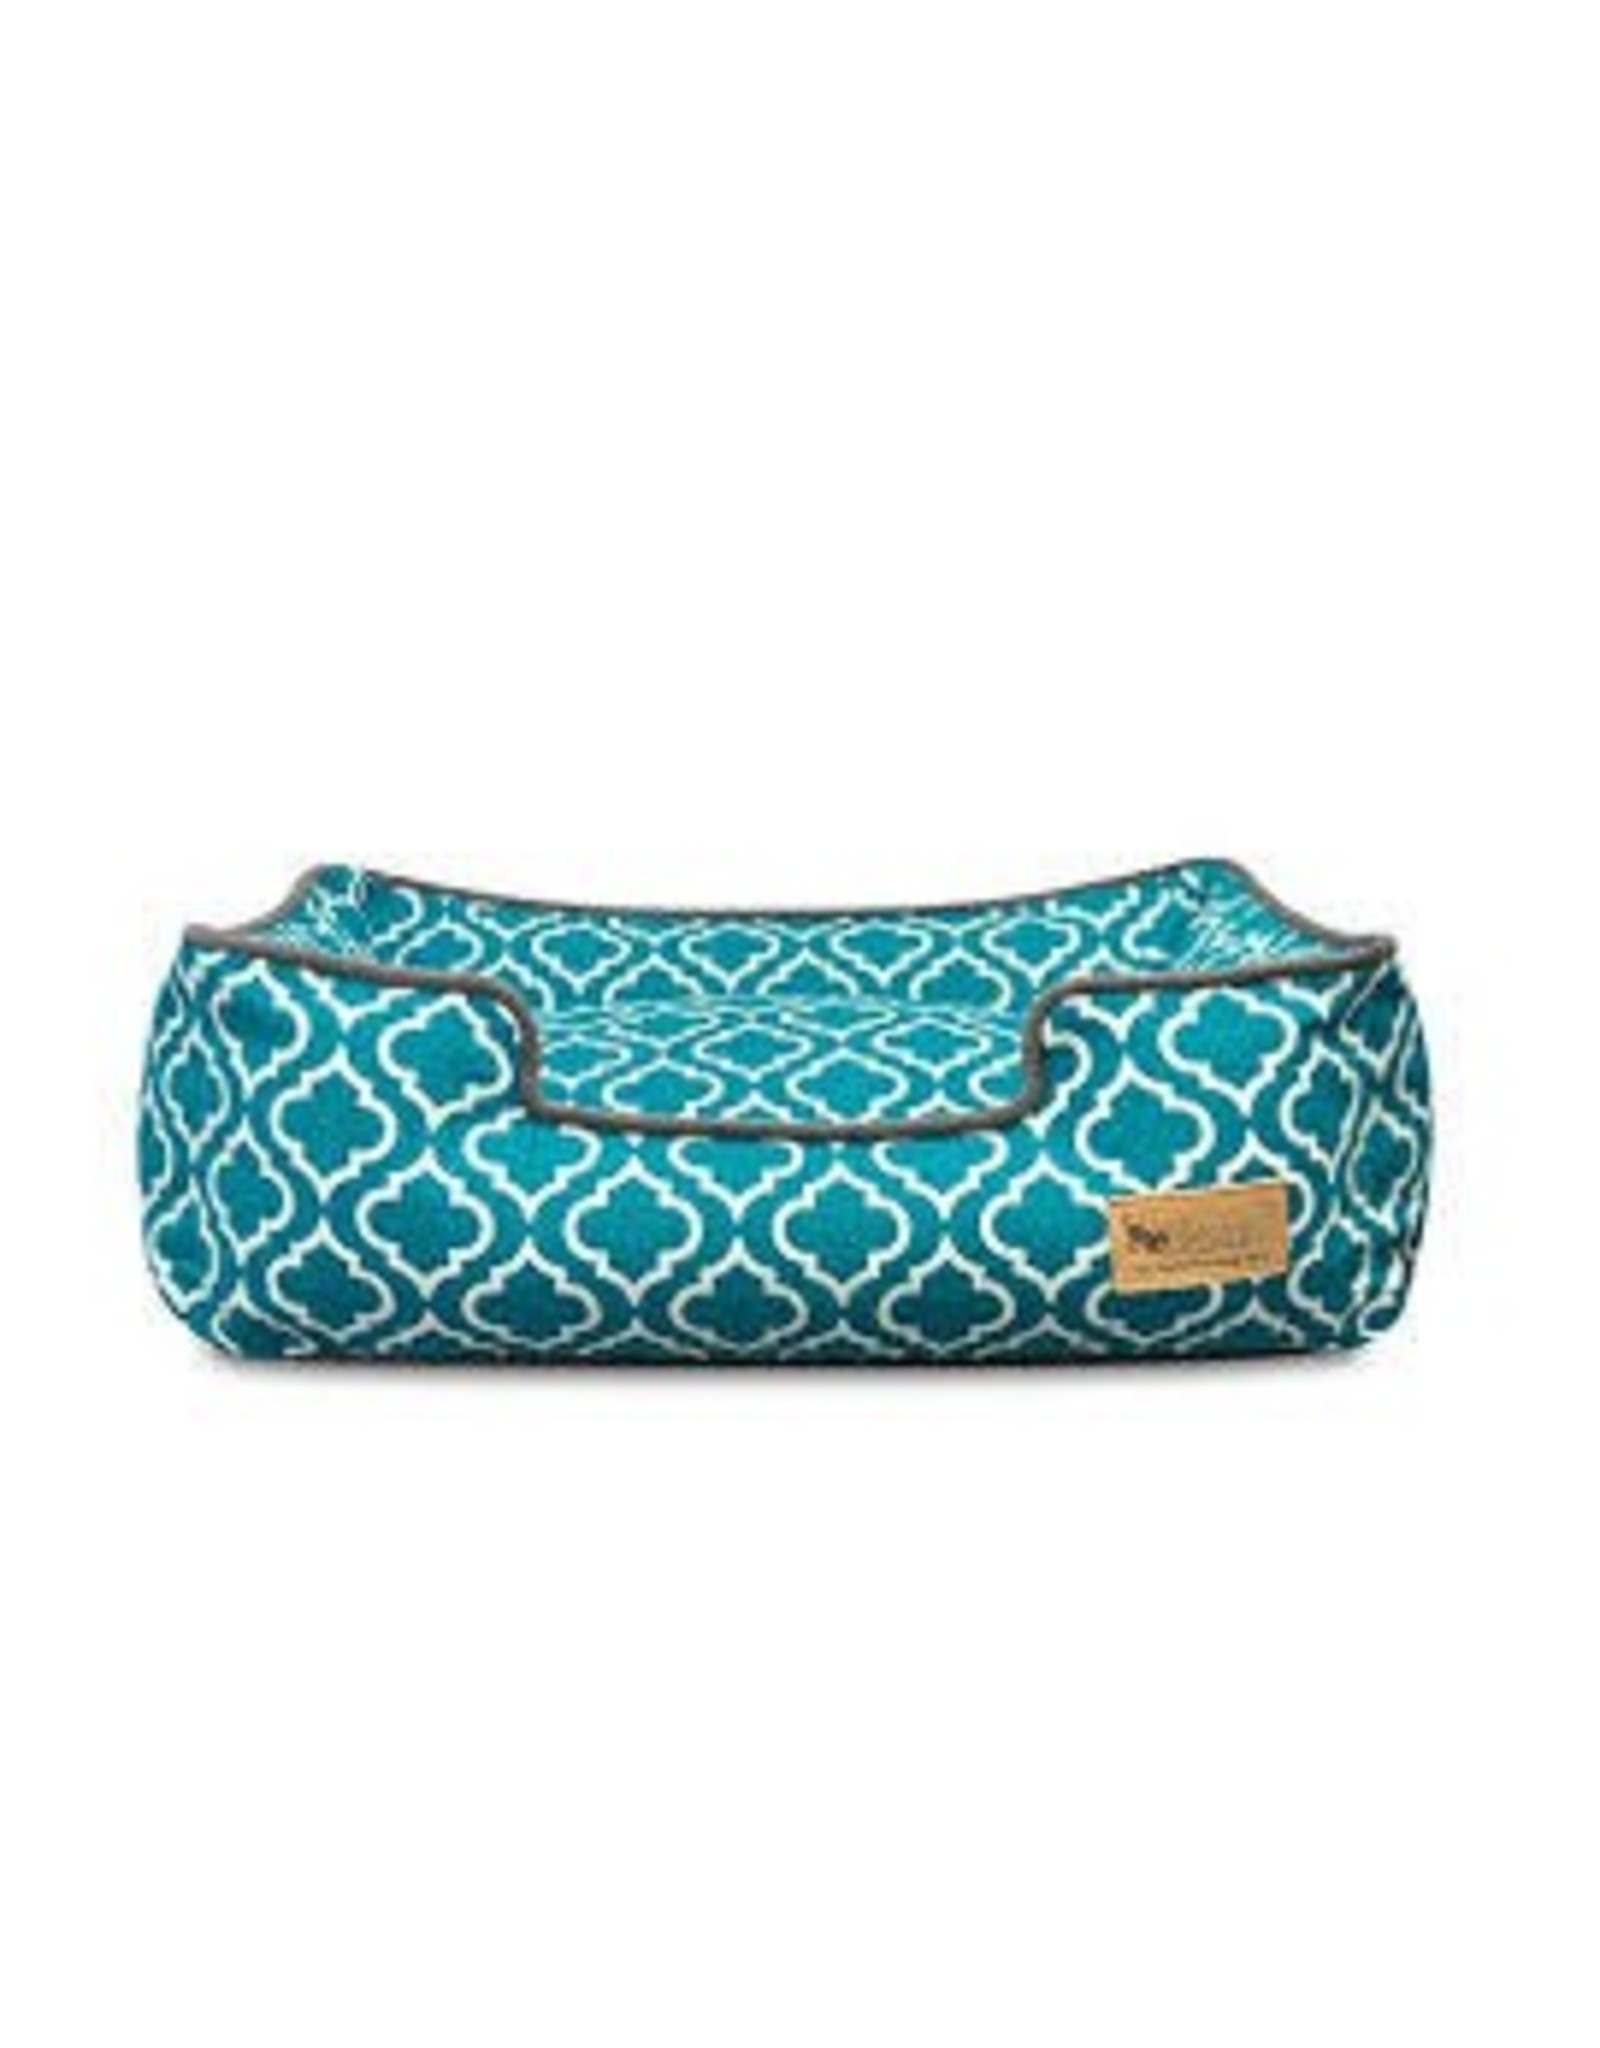 PLAY PLAY BED MORROCAN TEAL MED